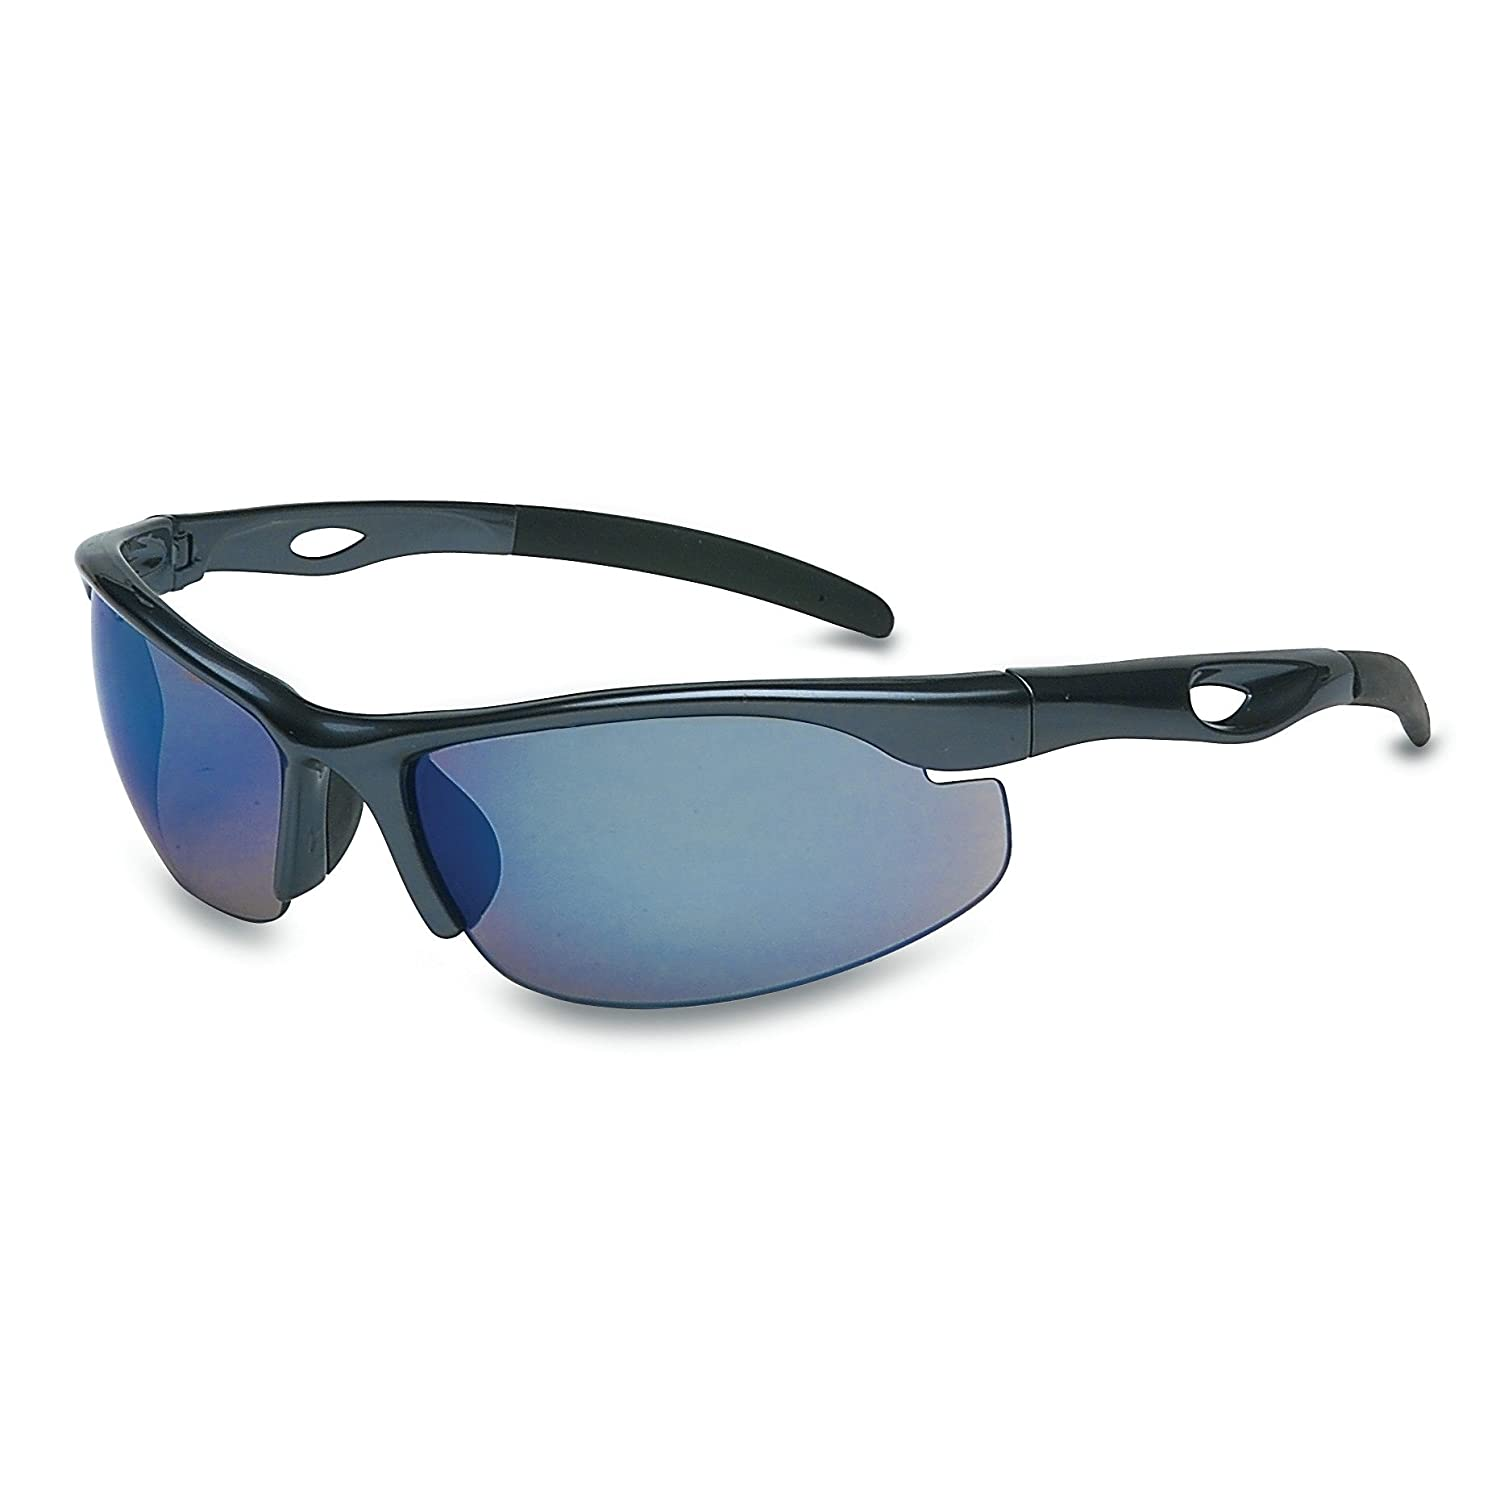 Ice Blue Galeton 9200344 Cyclone Contemporary Scratch and Impact Resistant Lenses Safety Glasses